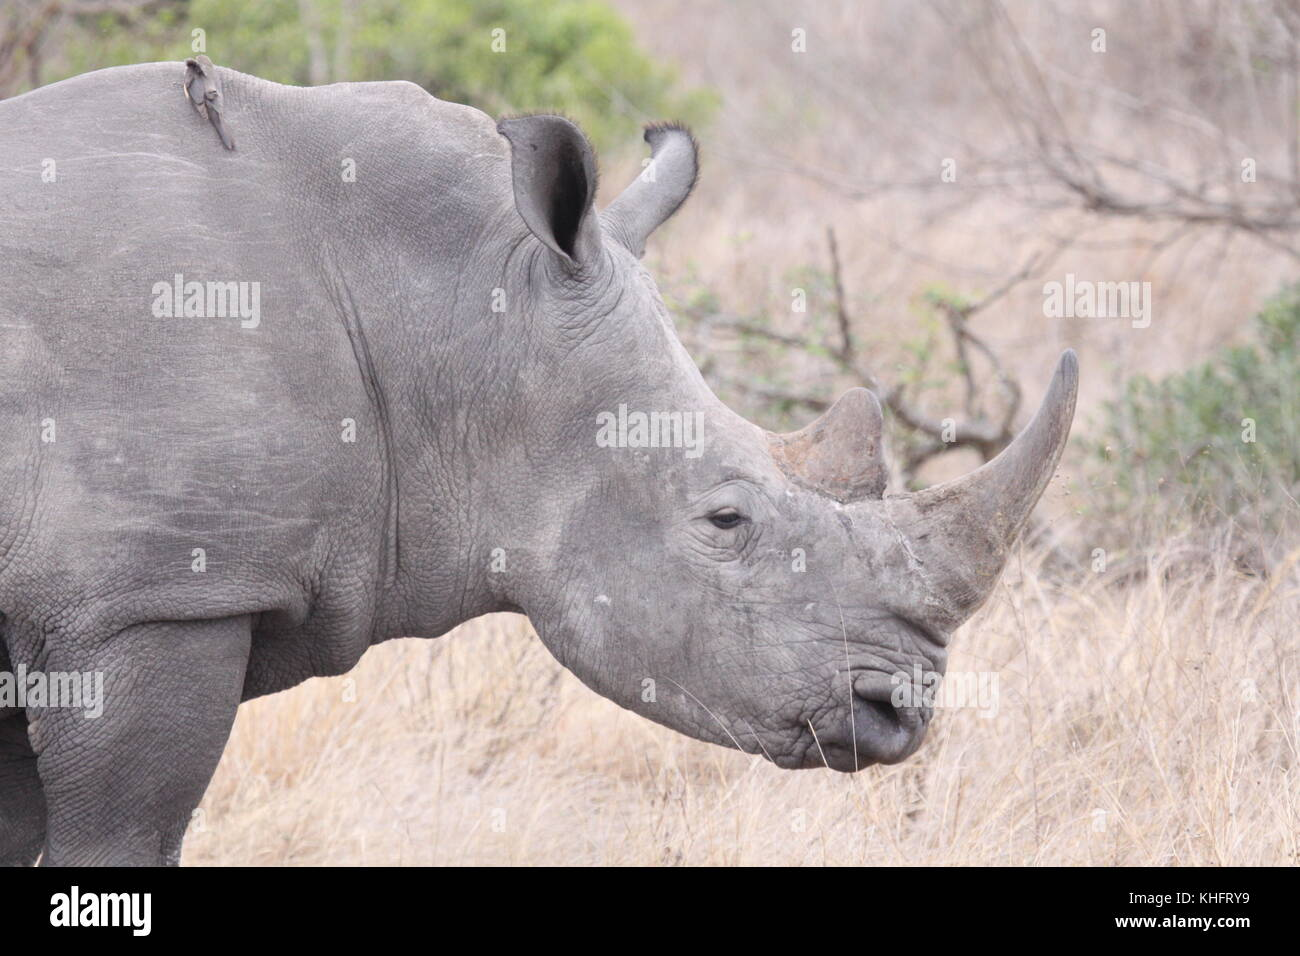 Large South African wildlife - Stock Image